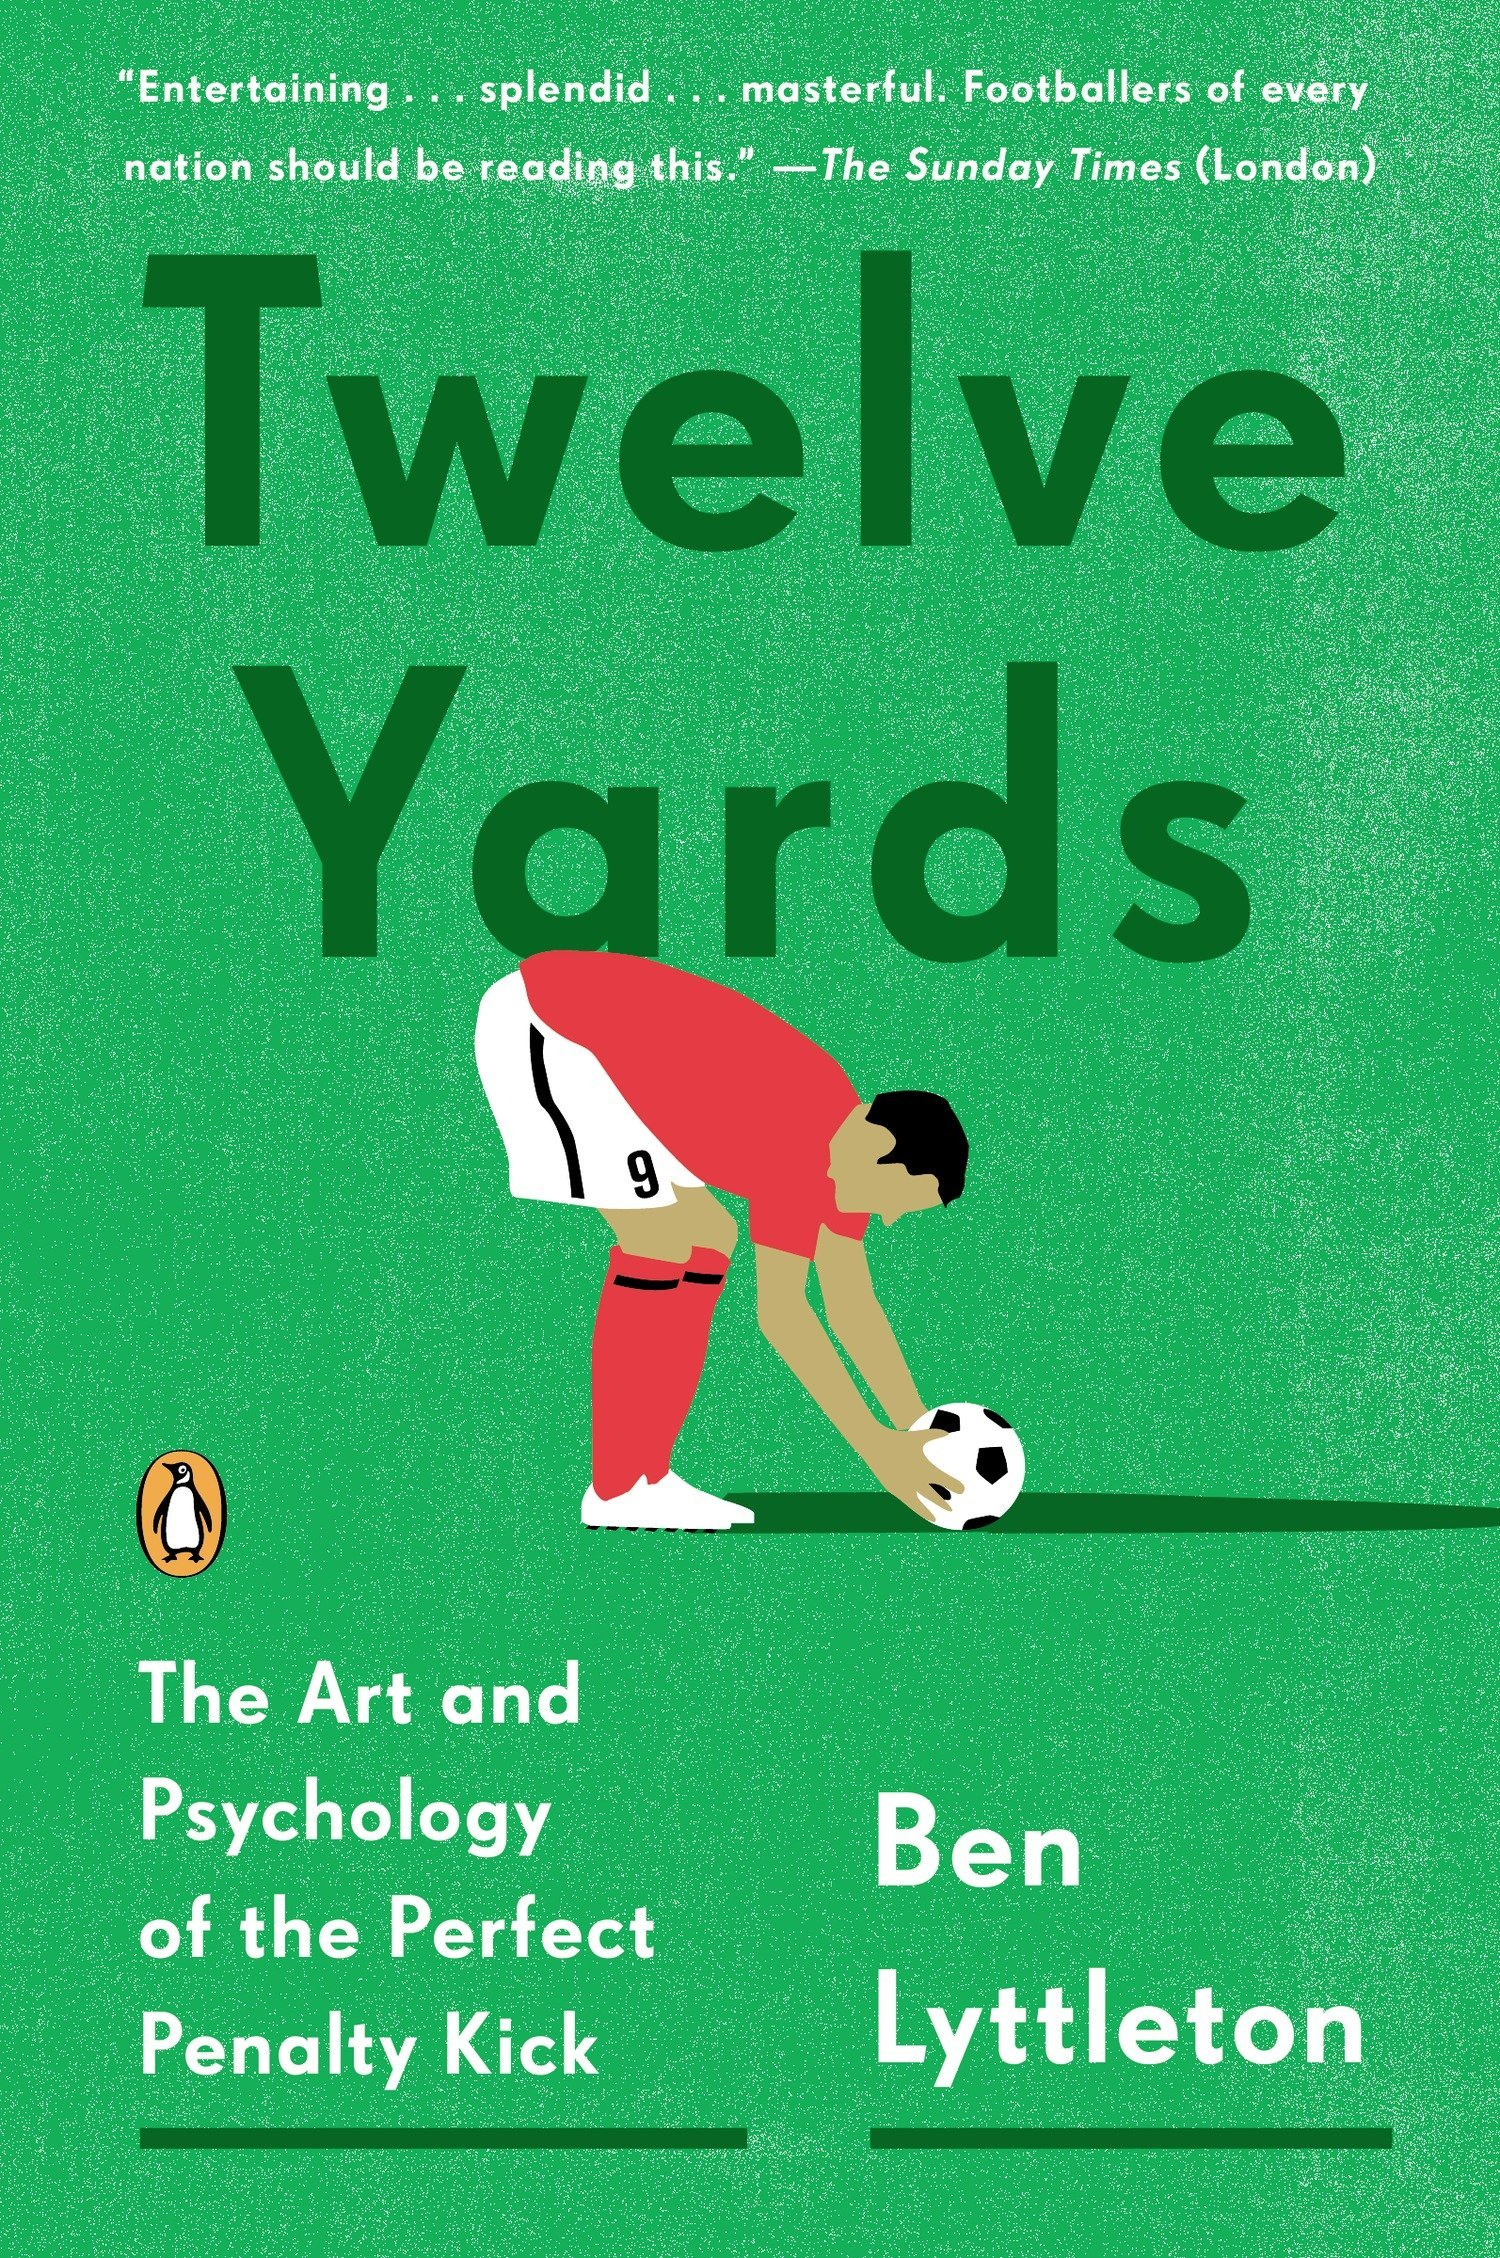 Twelve Yards: The Art and Psychology of the Perfect Penalty Kick: Amazon.es: Lyttleton, Ben: Libros en idiomas extranjeros